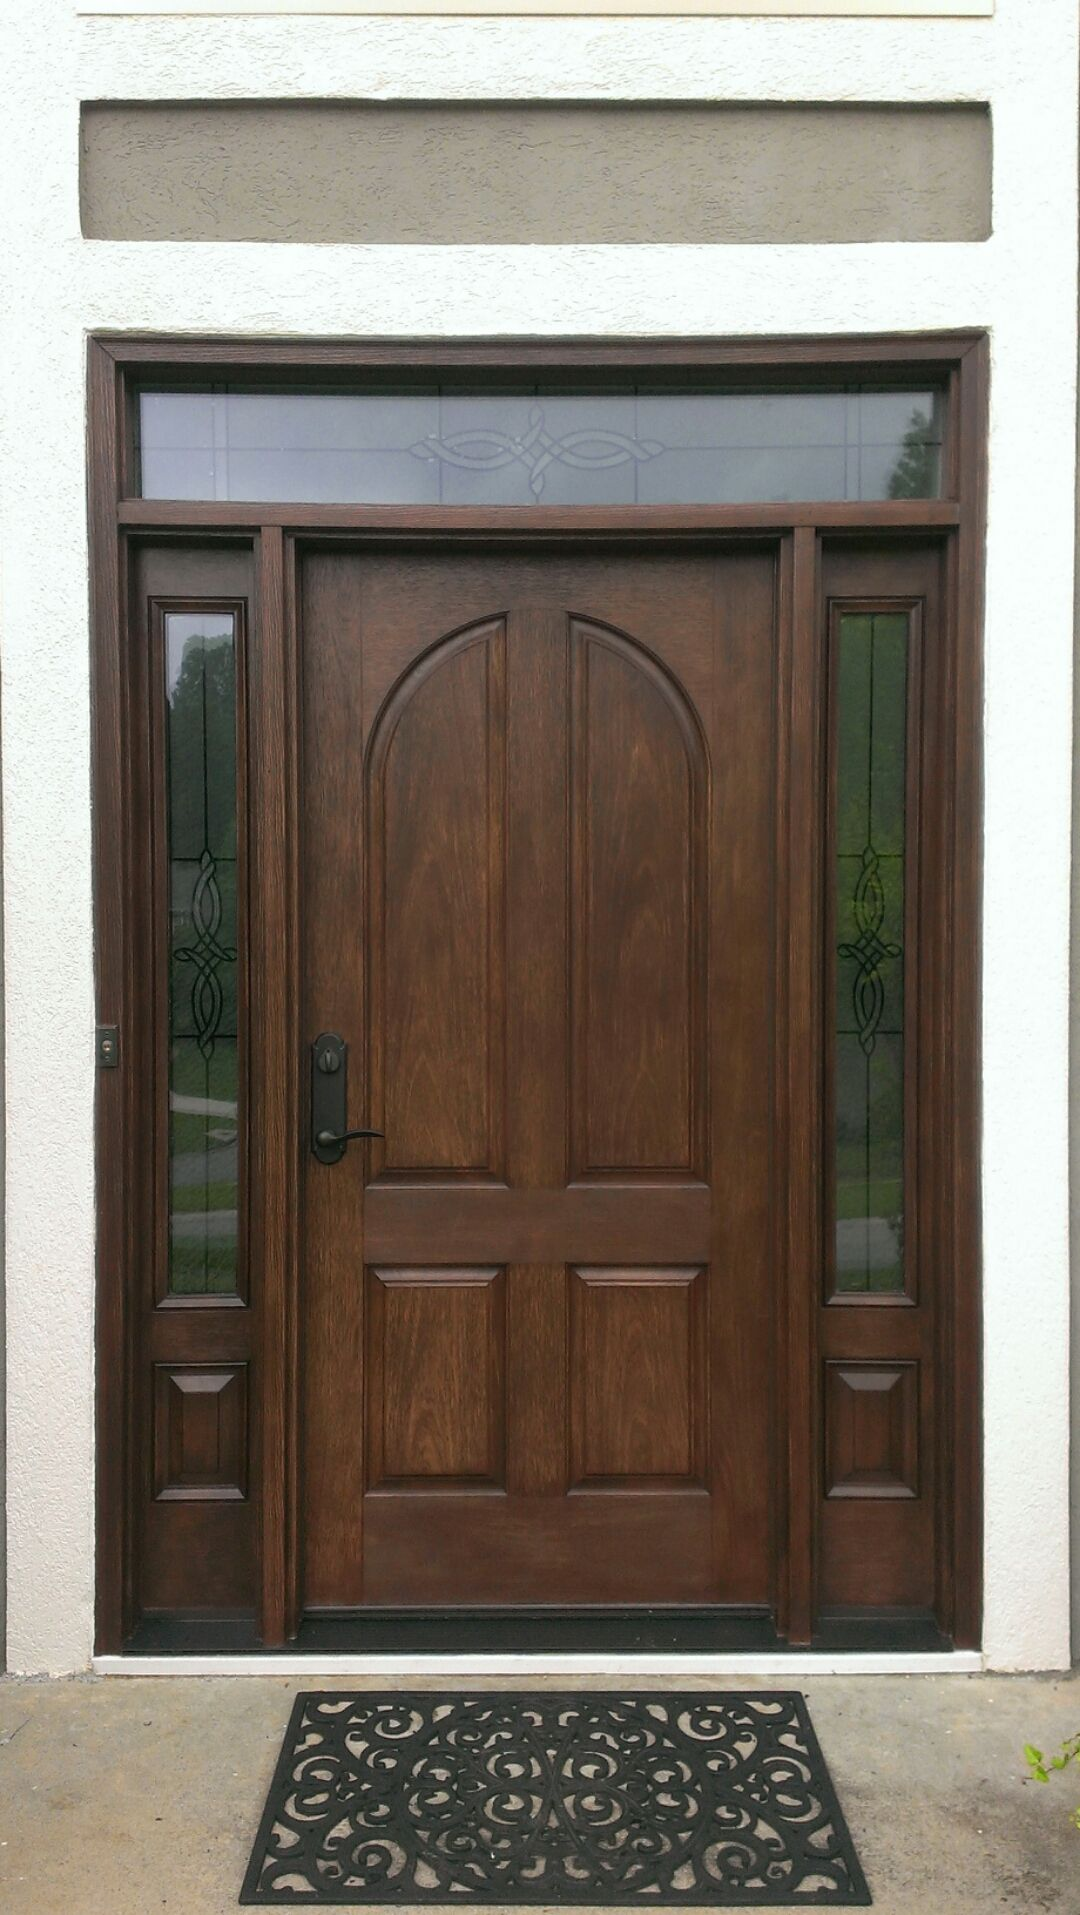 New therma tru classic craft door with longford glass for Front entry doors with glass